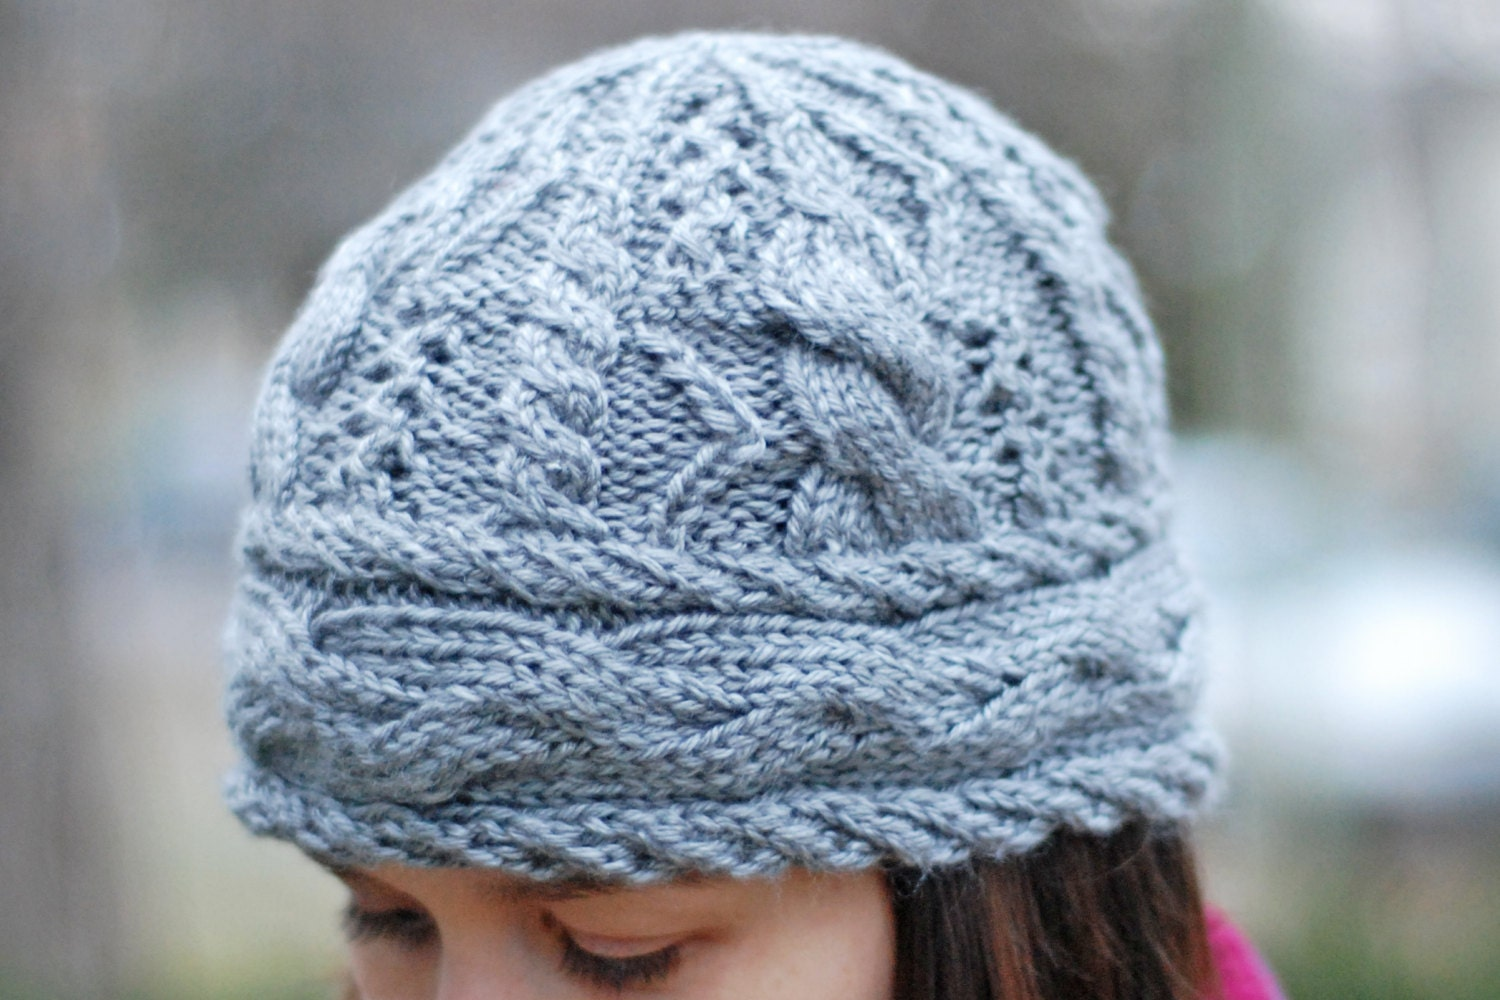 Sideways Knitting Patterns Free : Cedar Lake Cable & Eyelet Hat Knitting Pattern